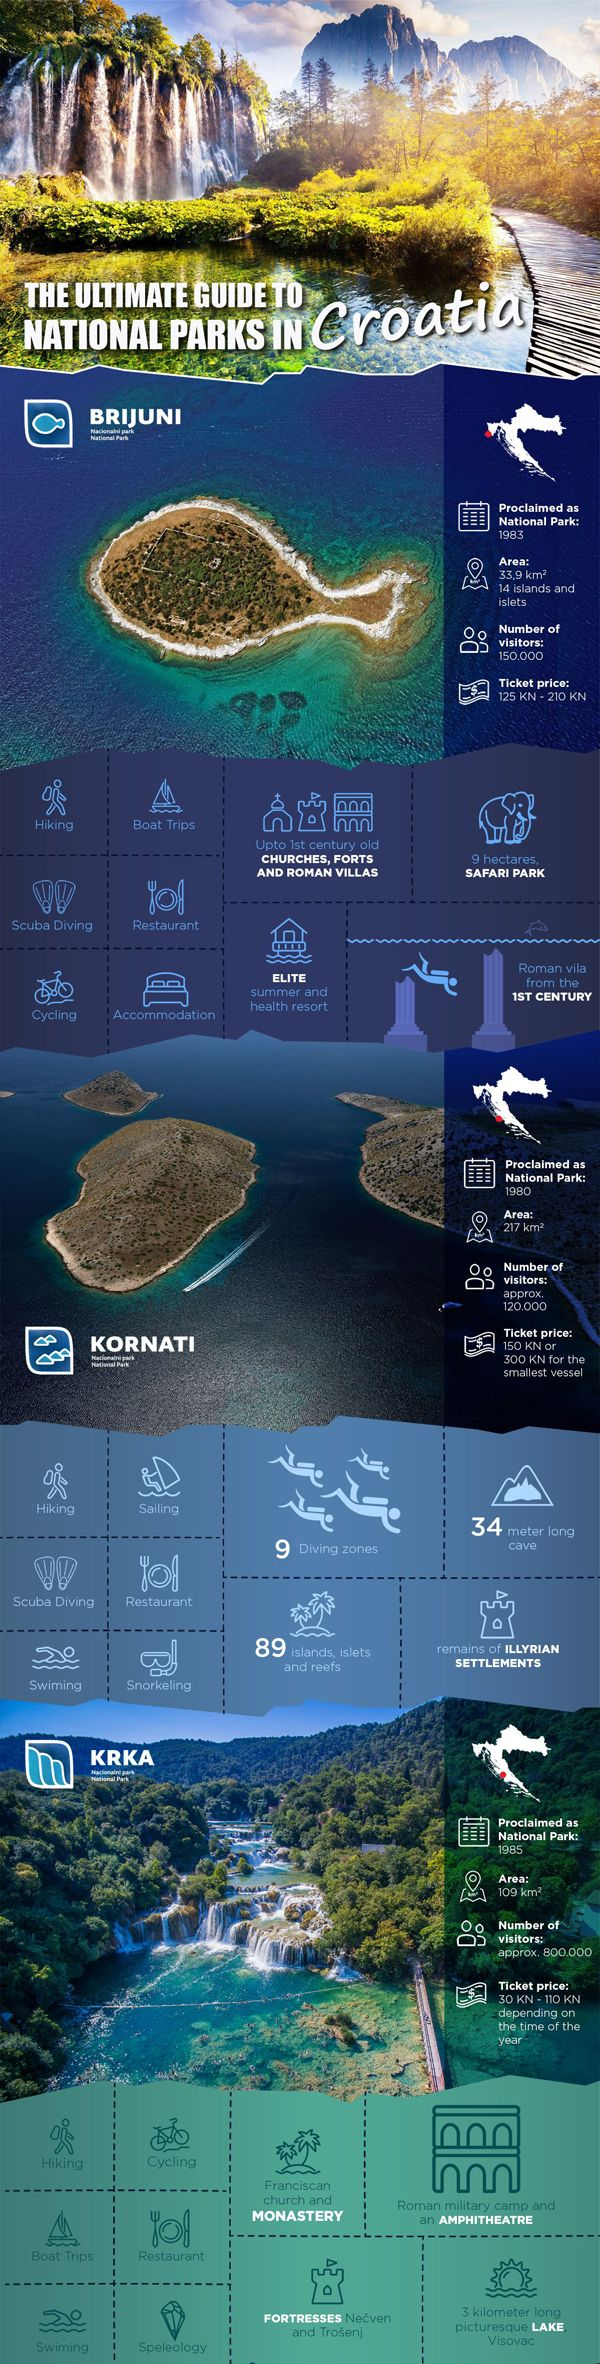 Infographic on the 8 National Parks of Croatia. Click here to see the whole thing: http://bbqboy.net/ultimate-guide-national-parks-croatia/ #croatia